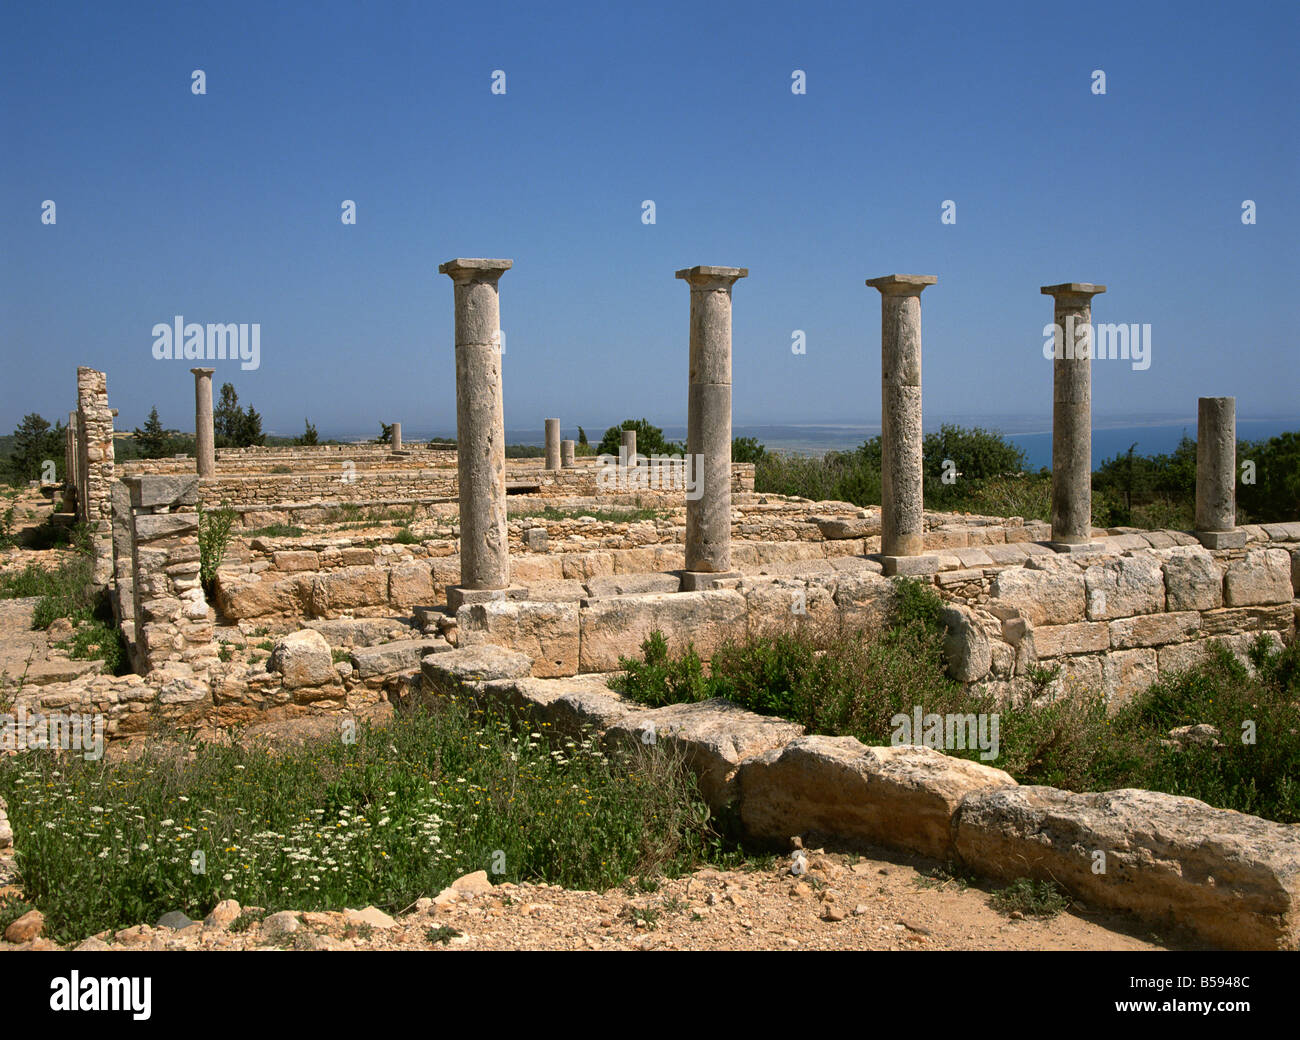 Ruins of the temple of Apollo-Hylates (God of Woodland), Cyprus, Europe - Stock Image